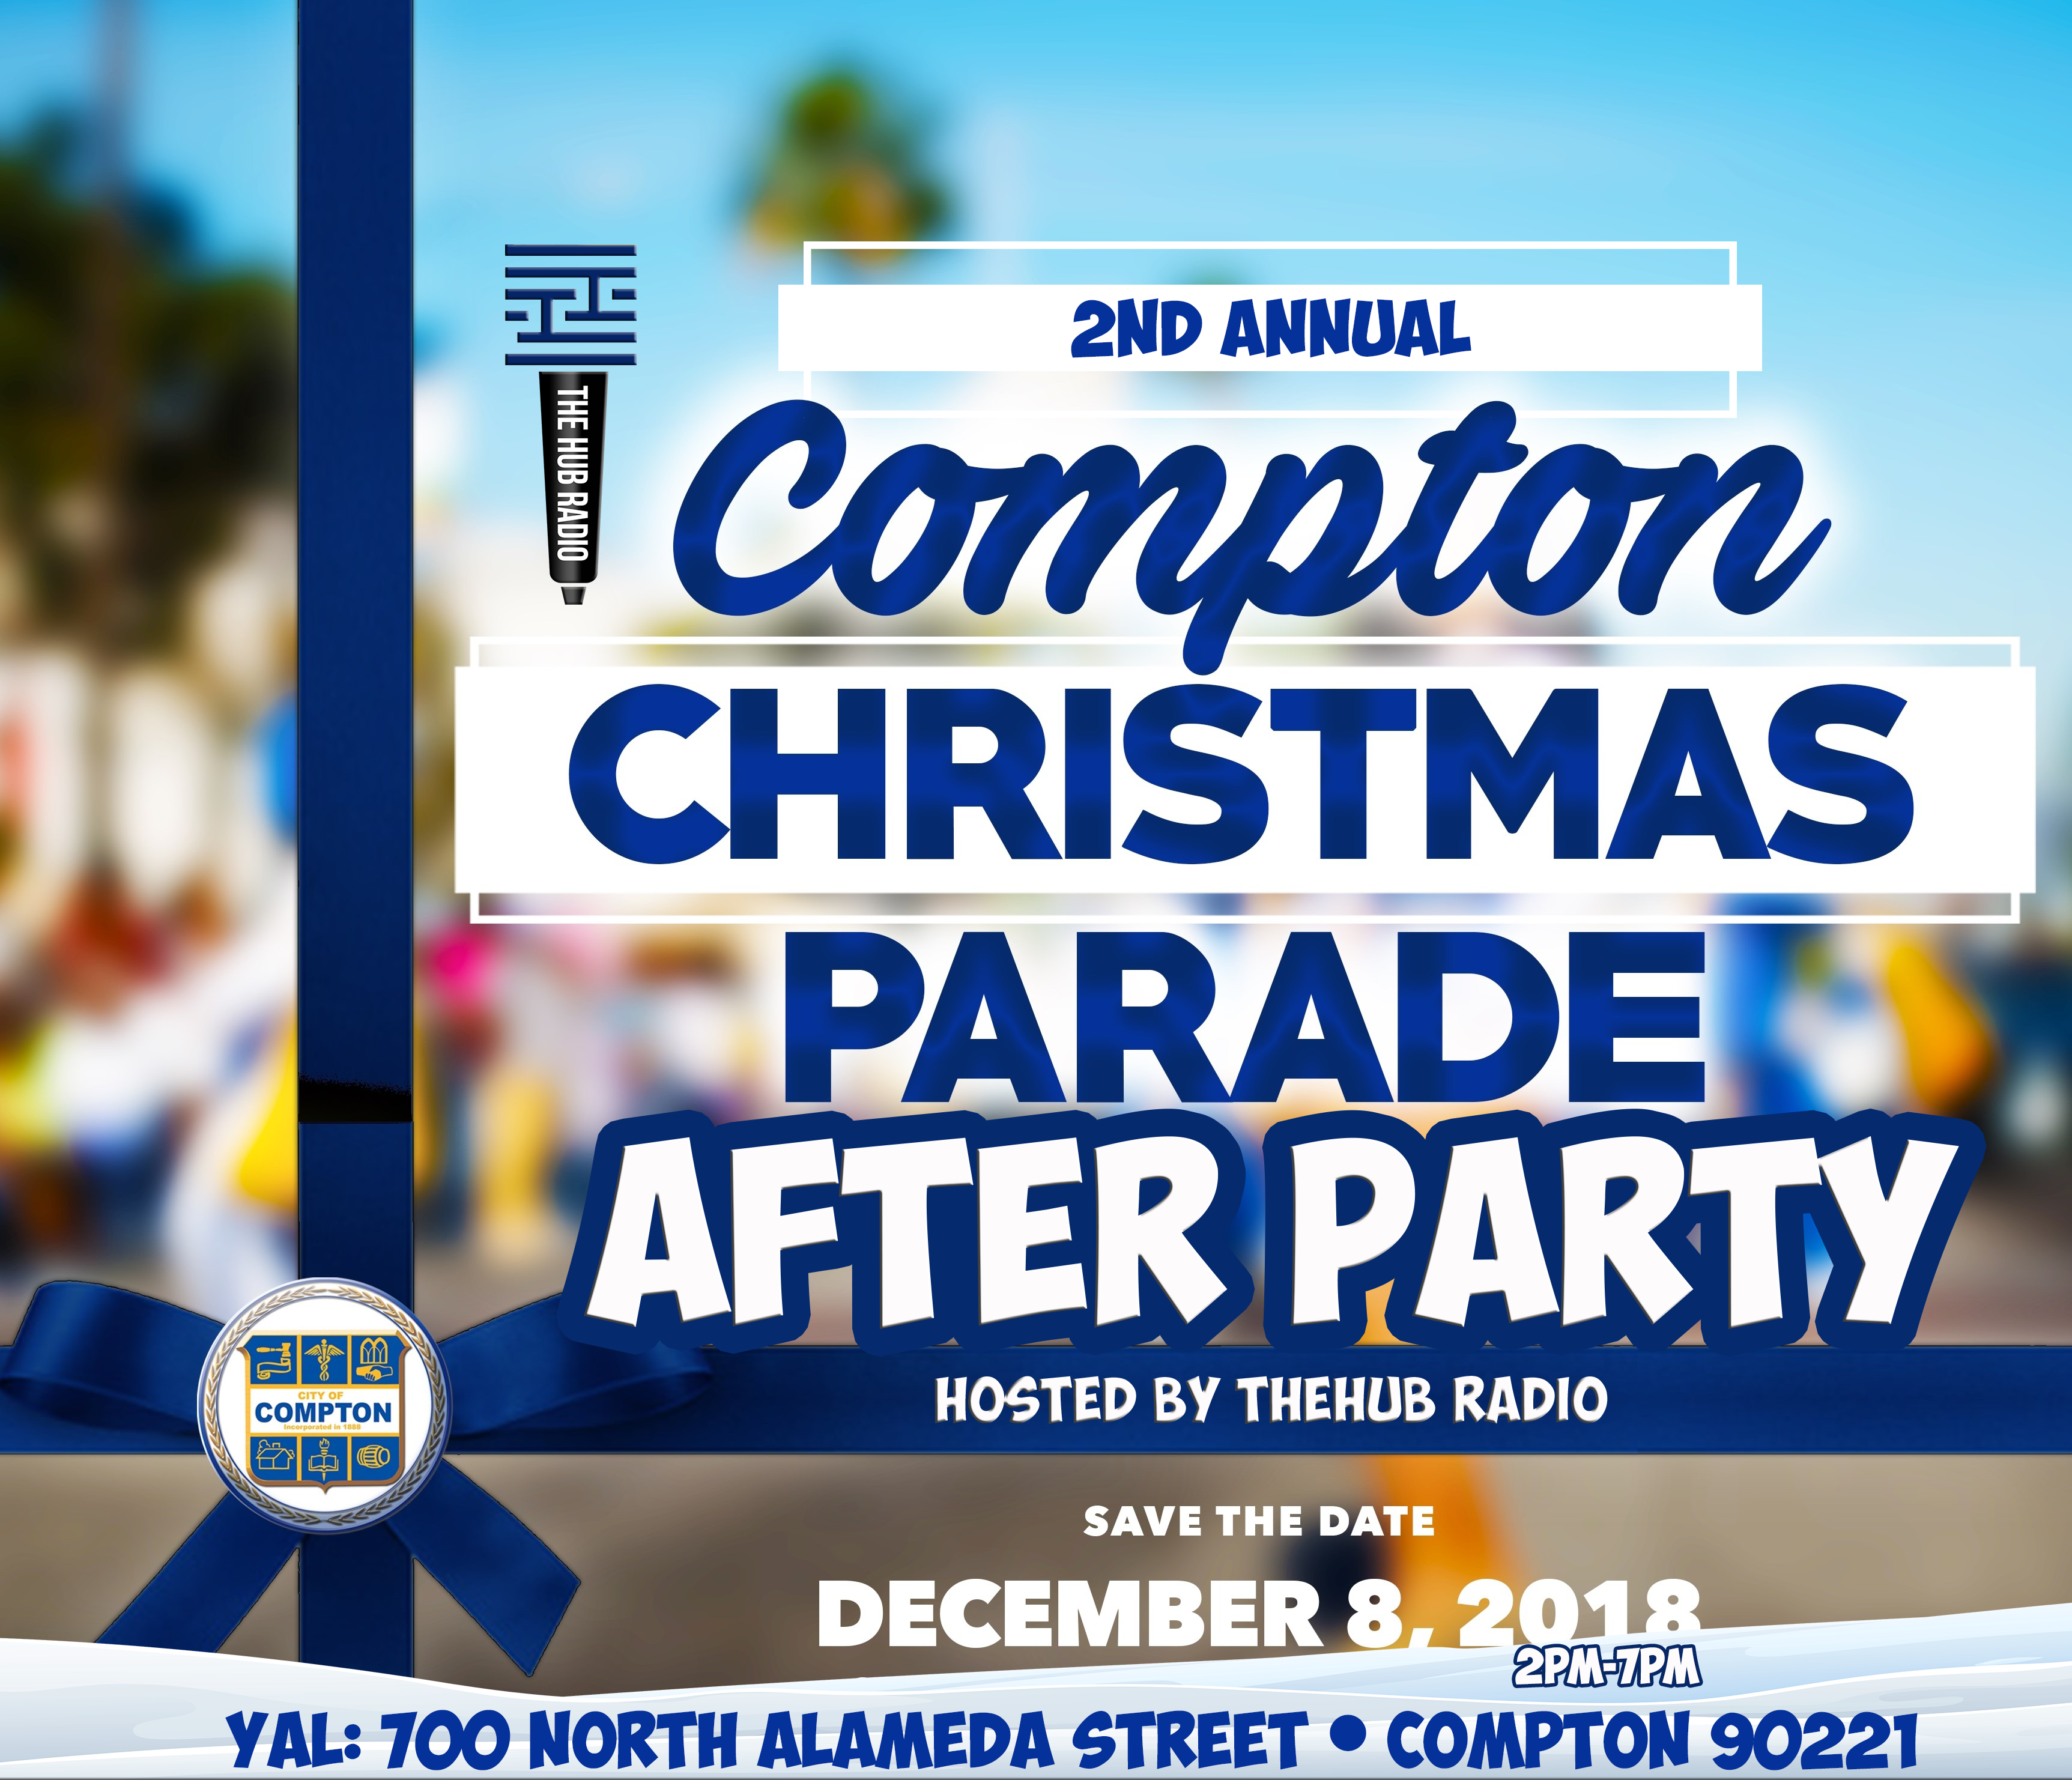 Compton Christmas Parade 2019 Vendor at the Compton Christmas Parade After Party? | TheHubRadio